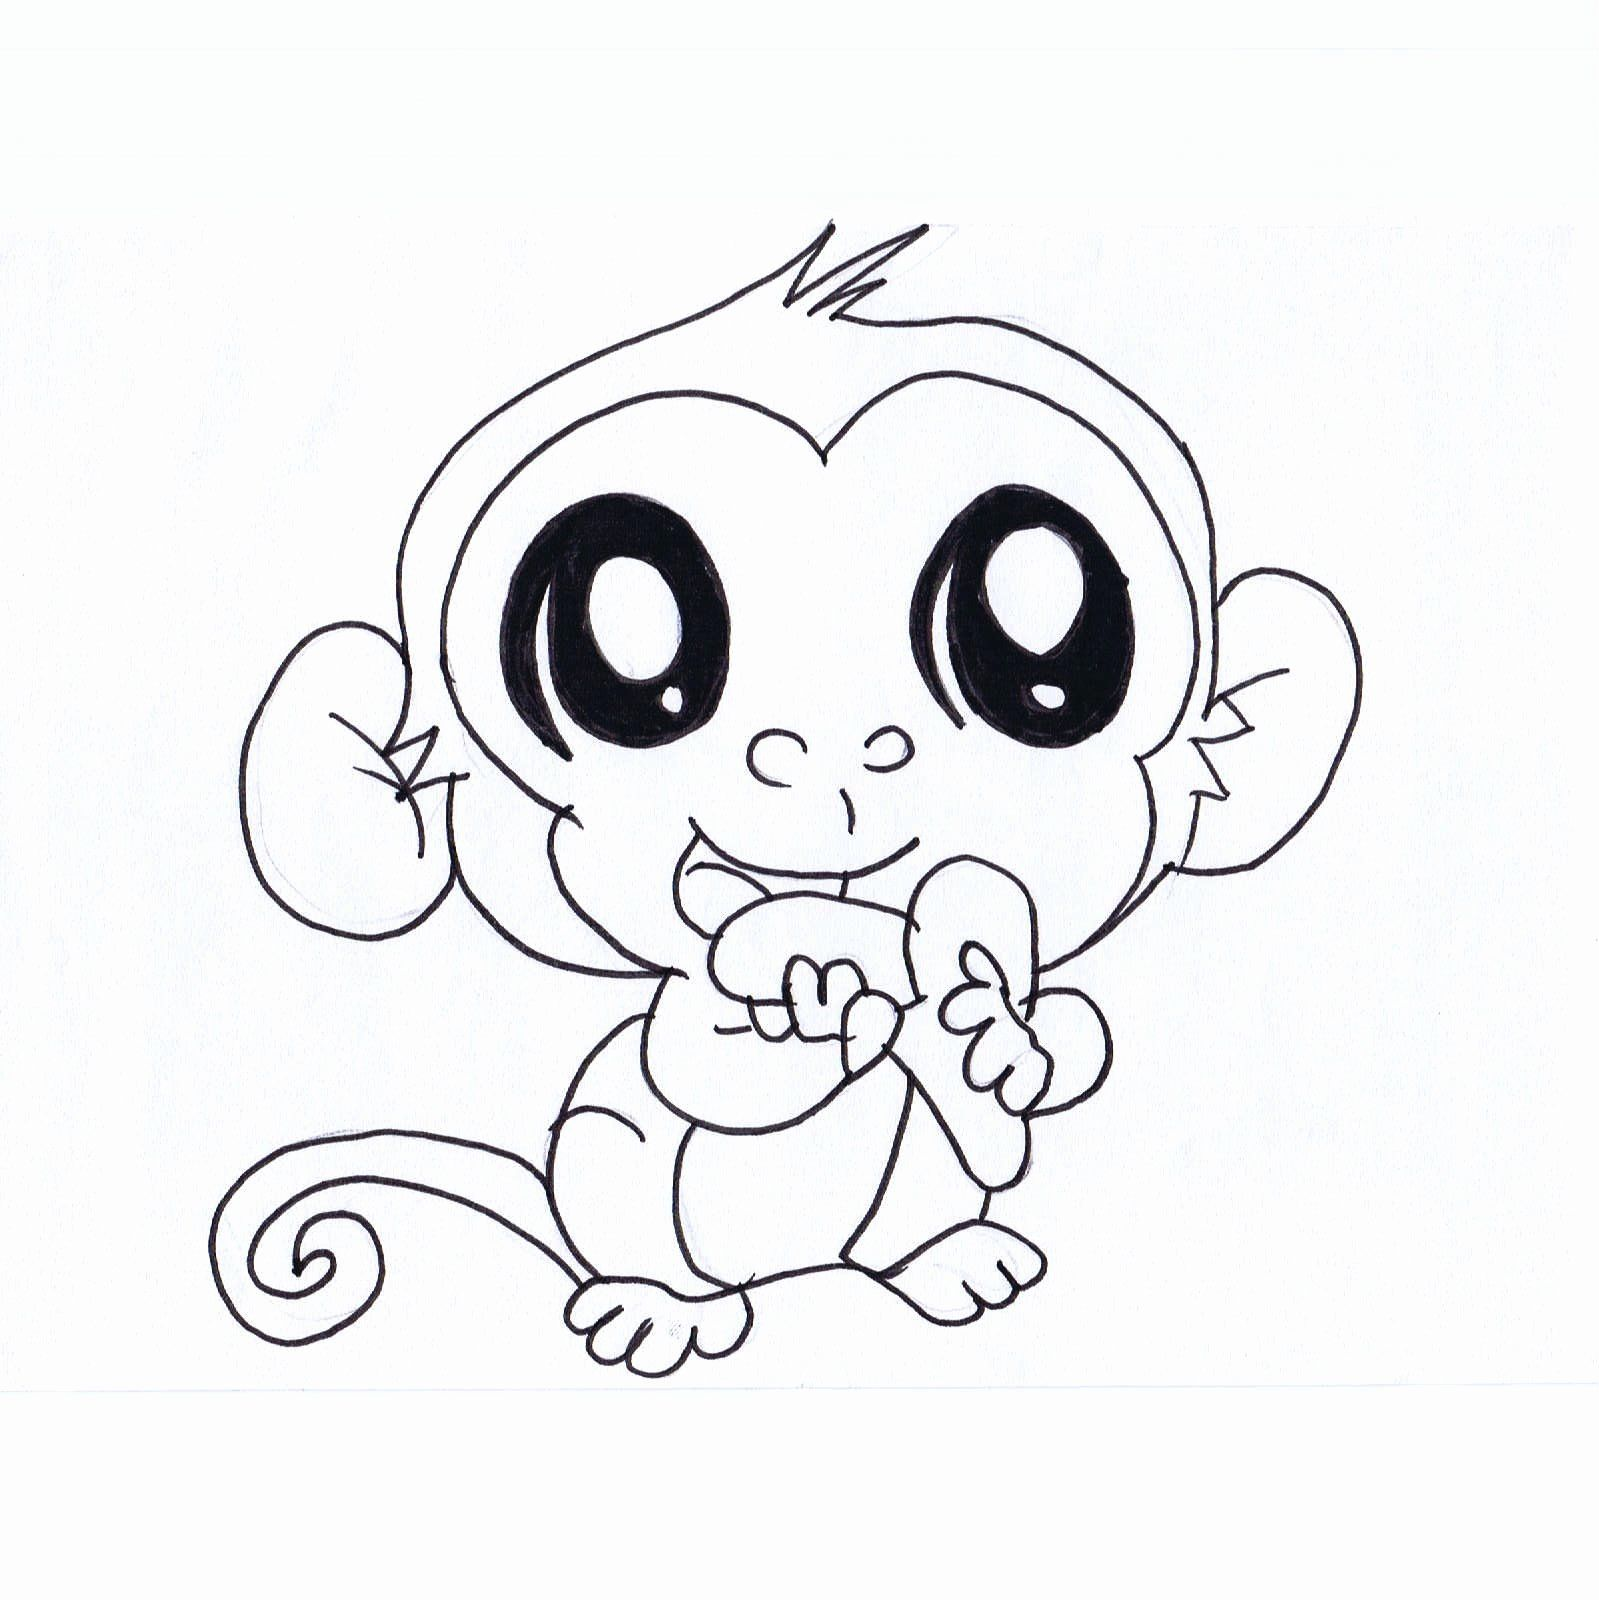 Cute Cartoon Animal Coloring Pages Awesome Cute Cartoon Animals Drawing At Getdrawings Cute Cartoon Animals Cute Cartoon Drawings Cute Animal Drawings